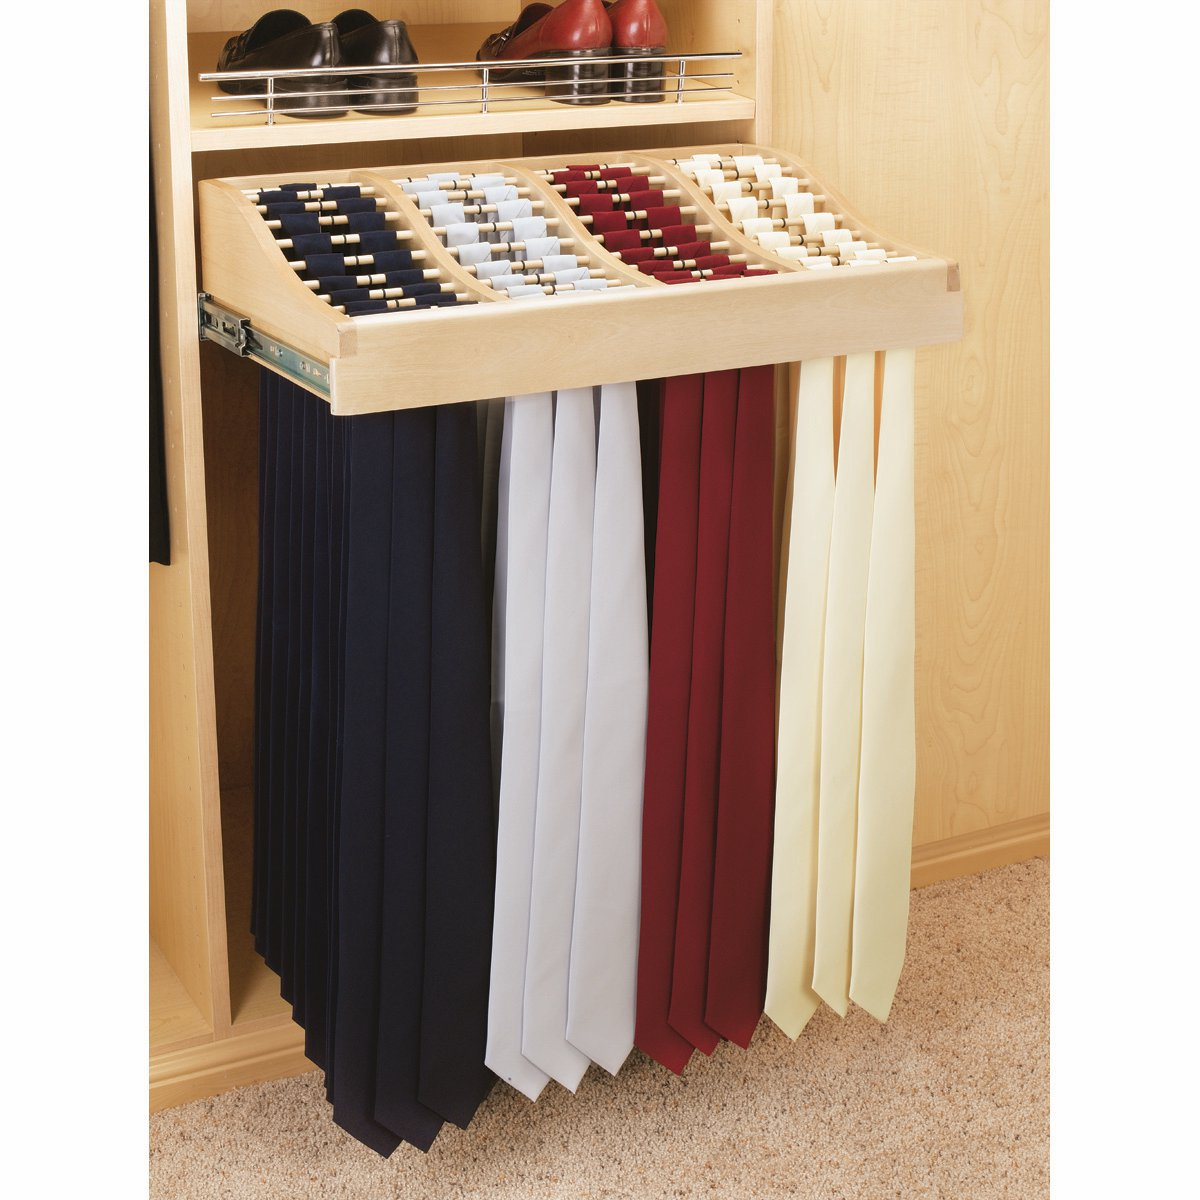 Rev-A-Shelf RCWTR-2414-1 24 in. Classic Tie Rack with Slides and Hardware